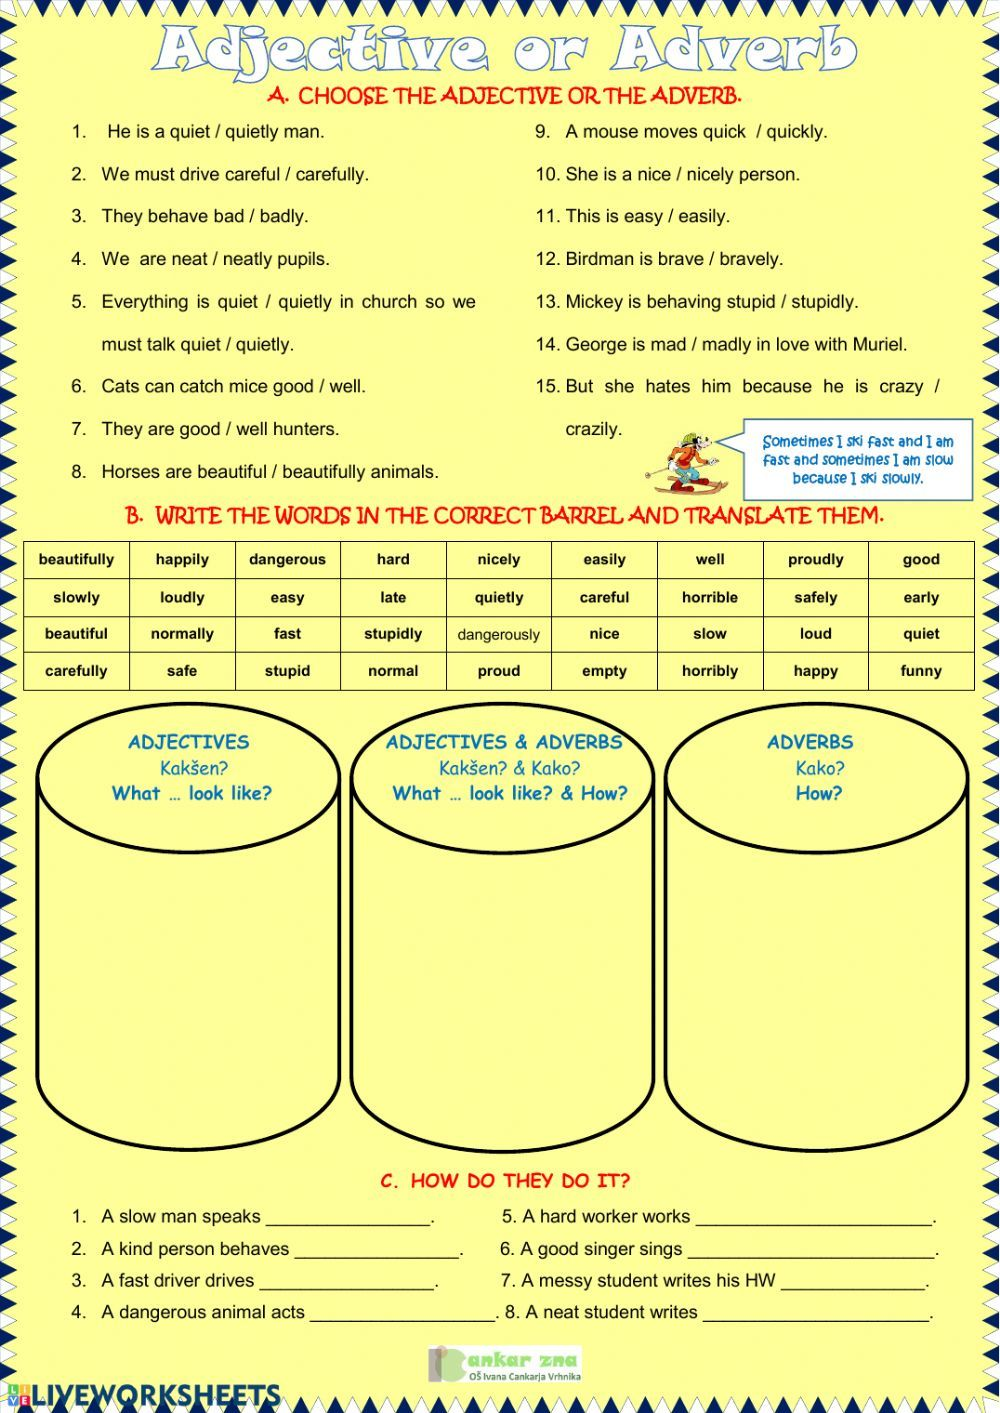 Adjective Or Adverb Interactive Worksheet Adverbs Worksheet Adjectives Adverbs